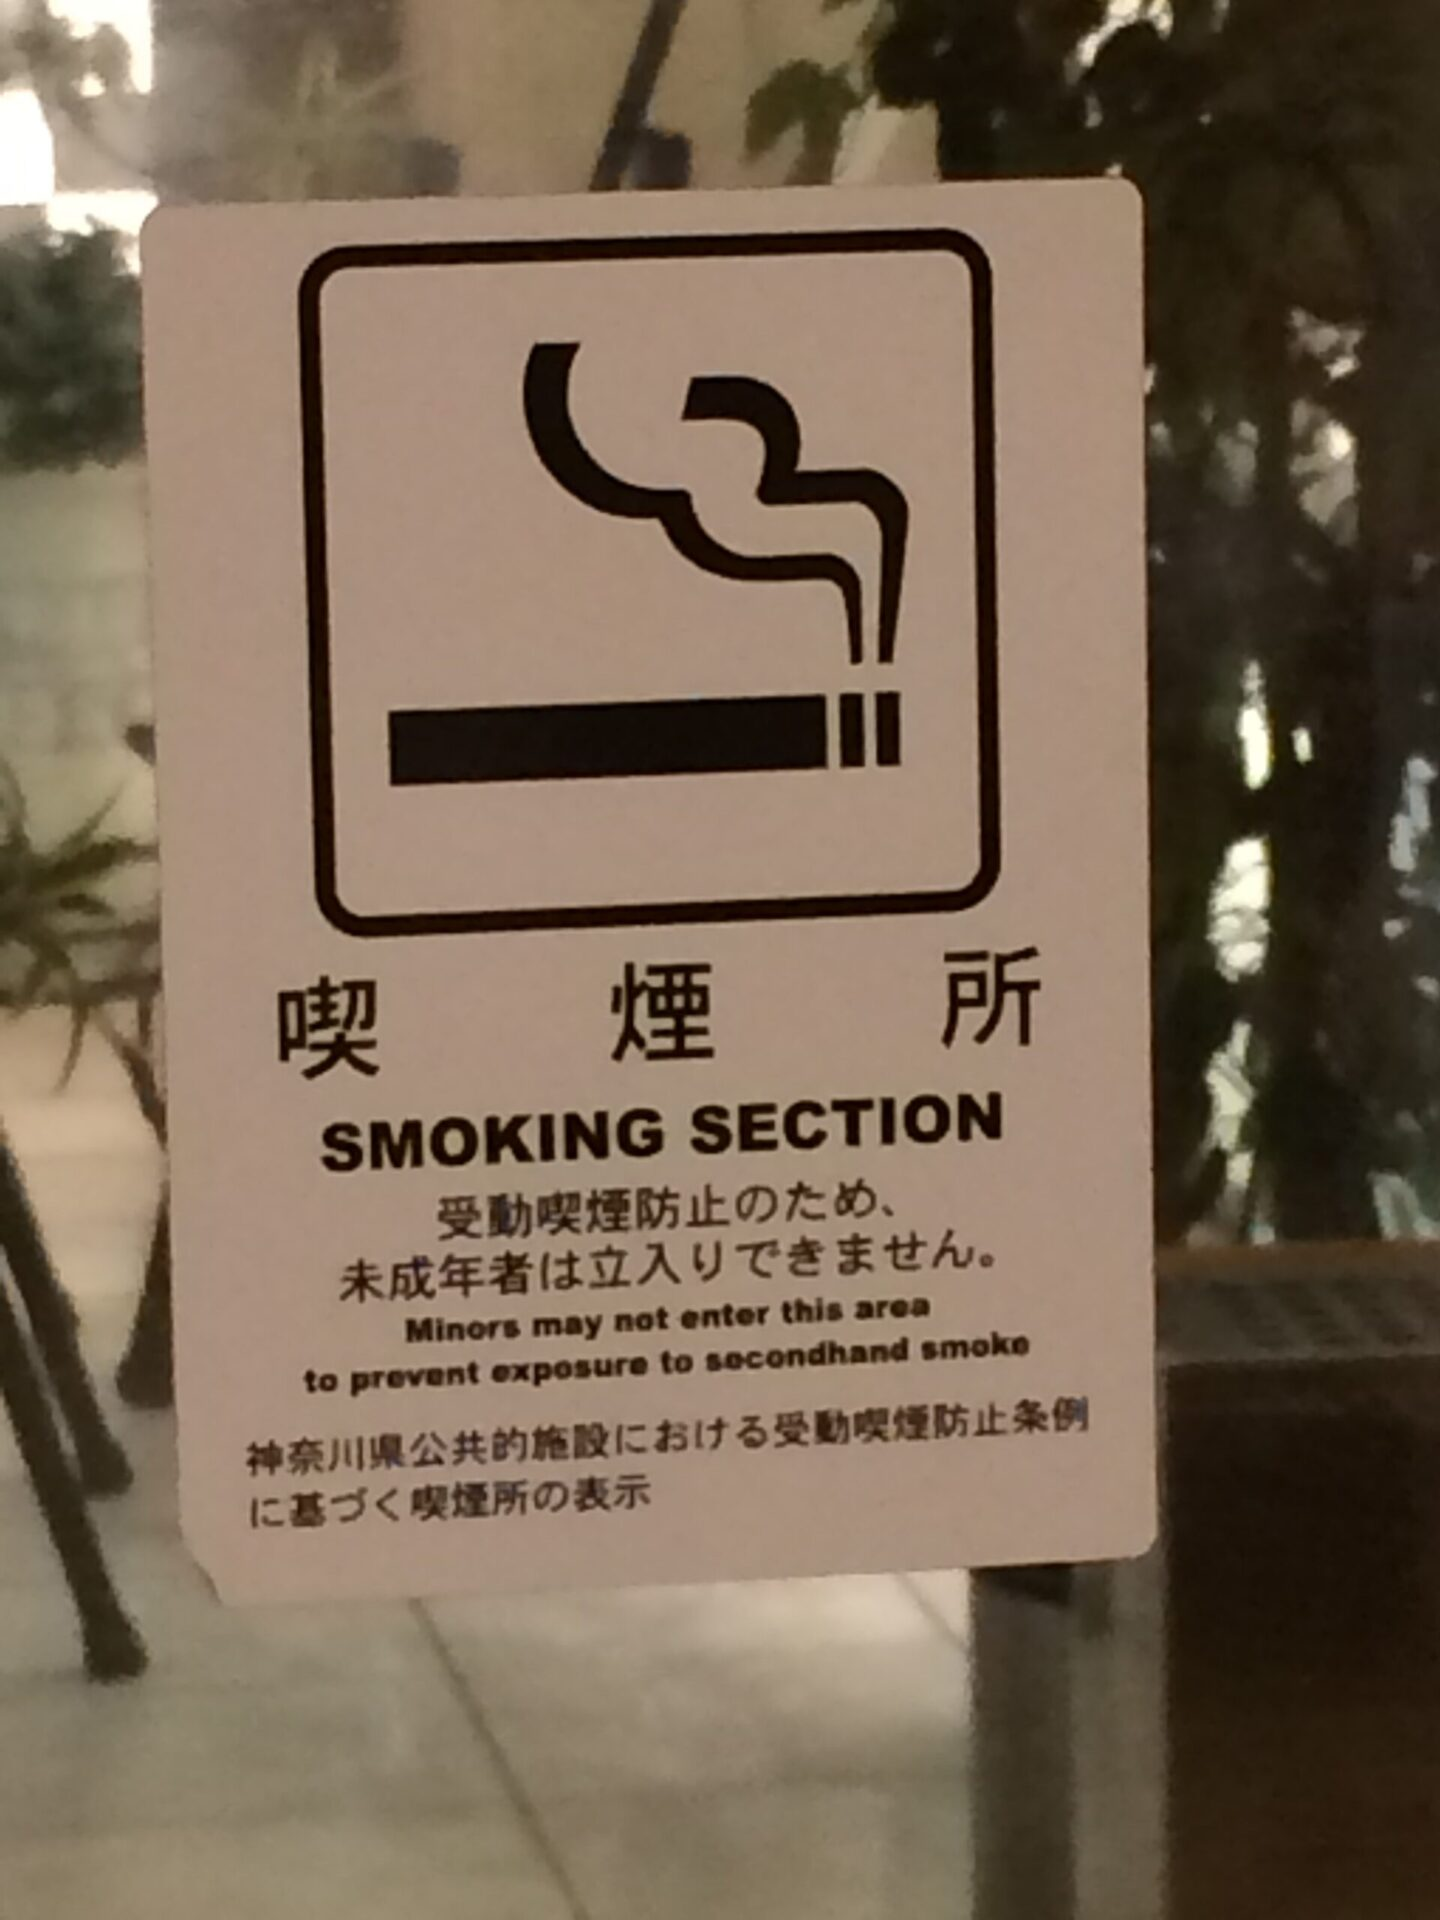 Smoking tips and manners